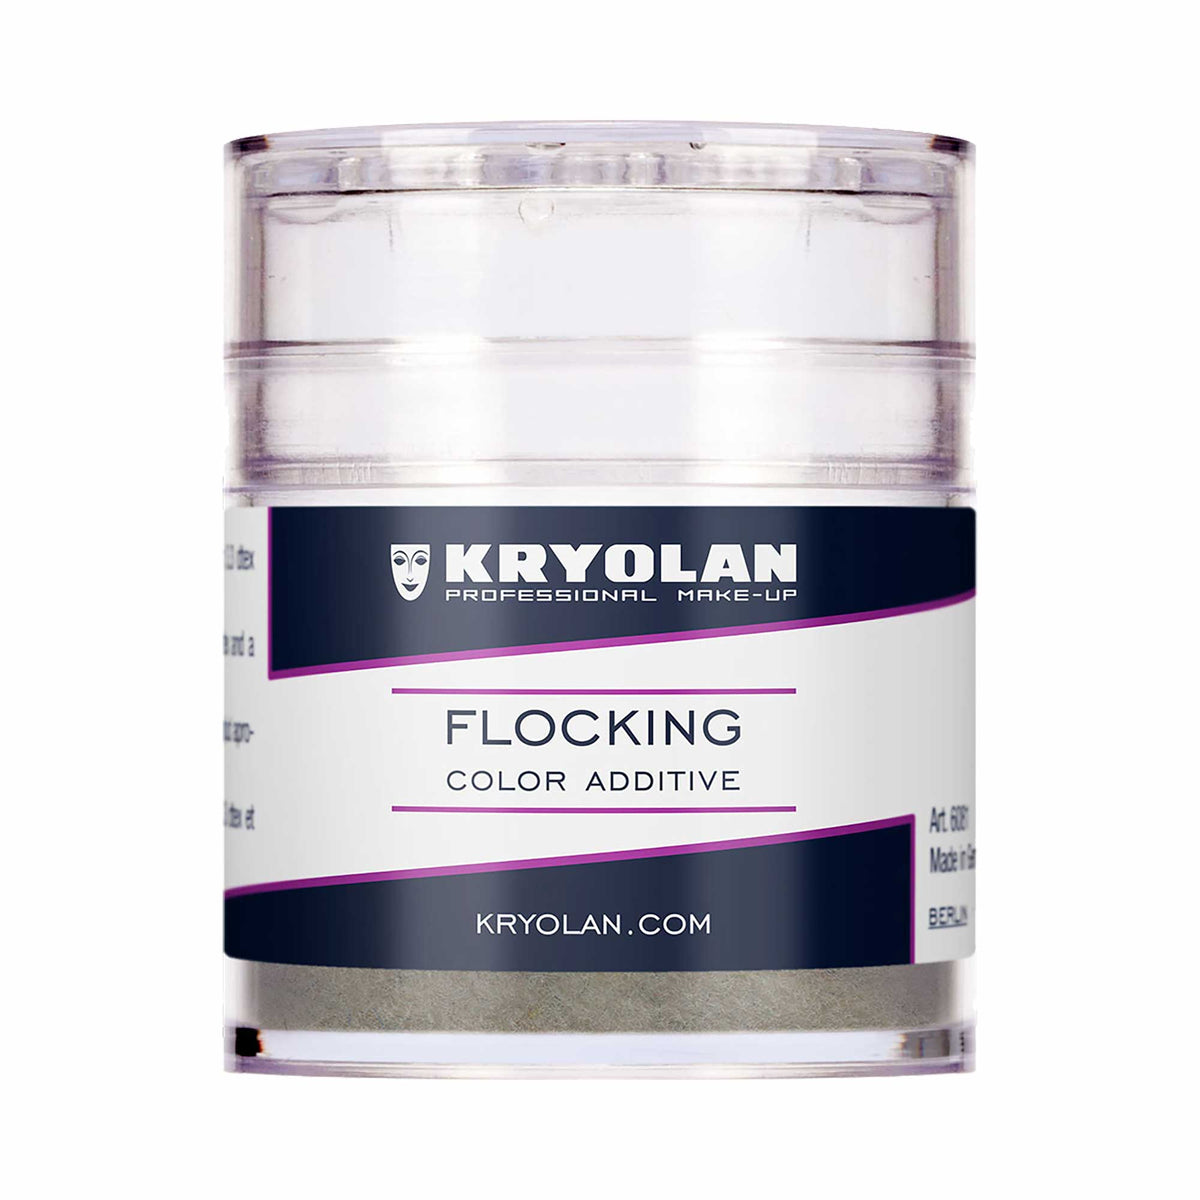 Kryolan Flocking Colour Additive Shaker